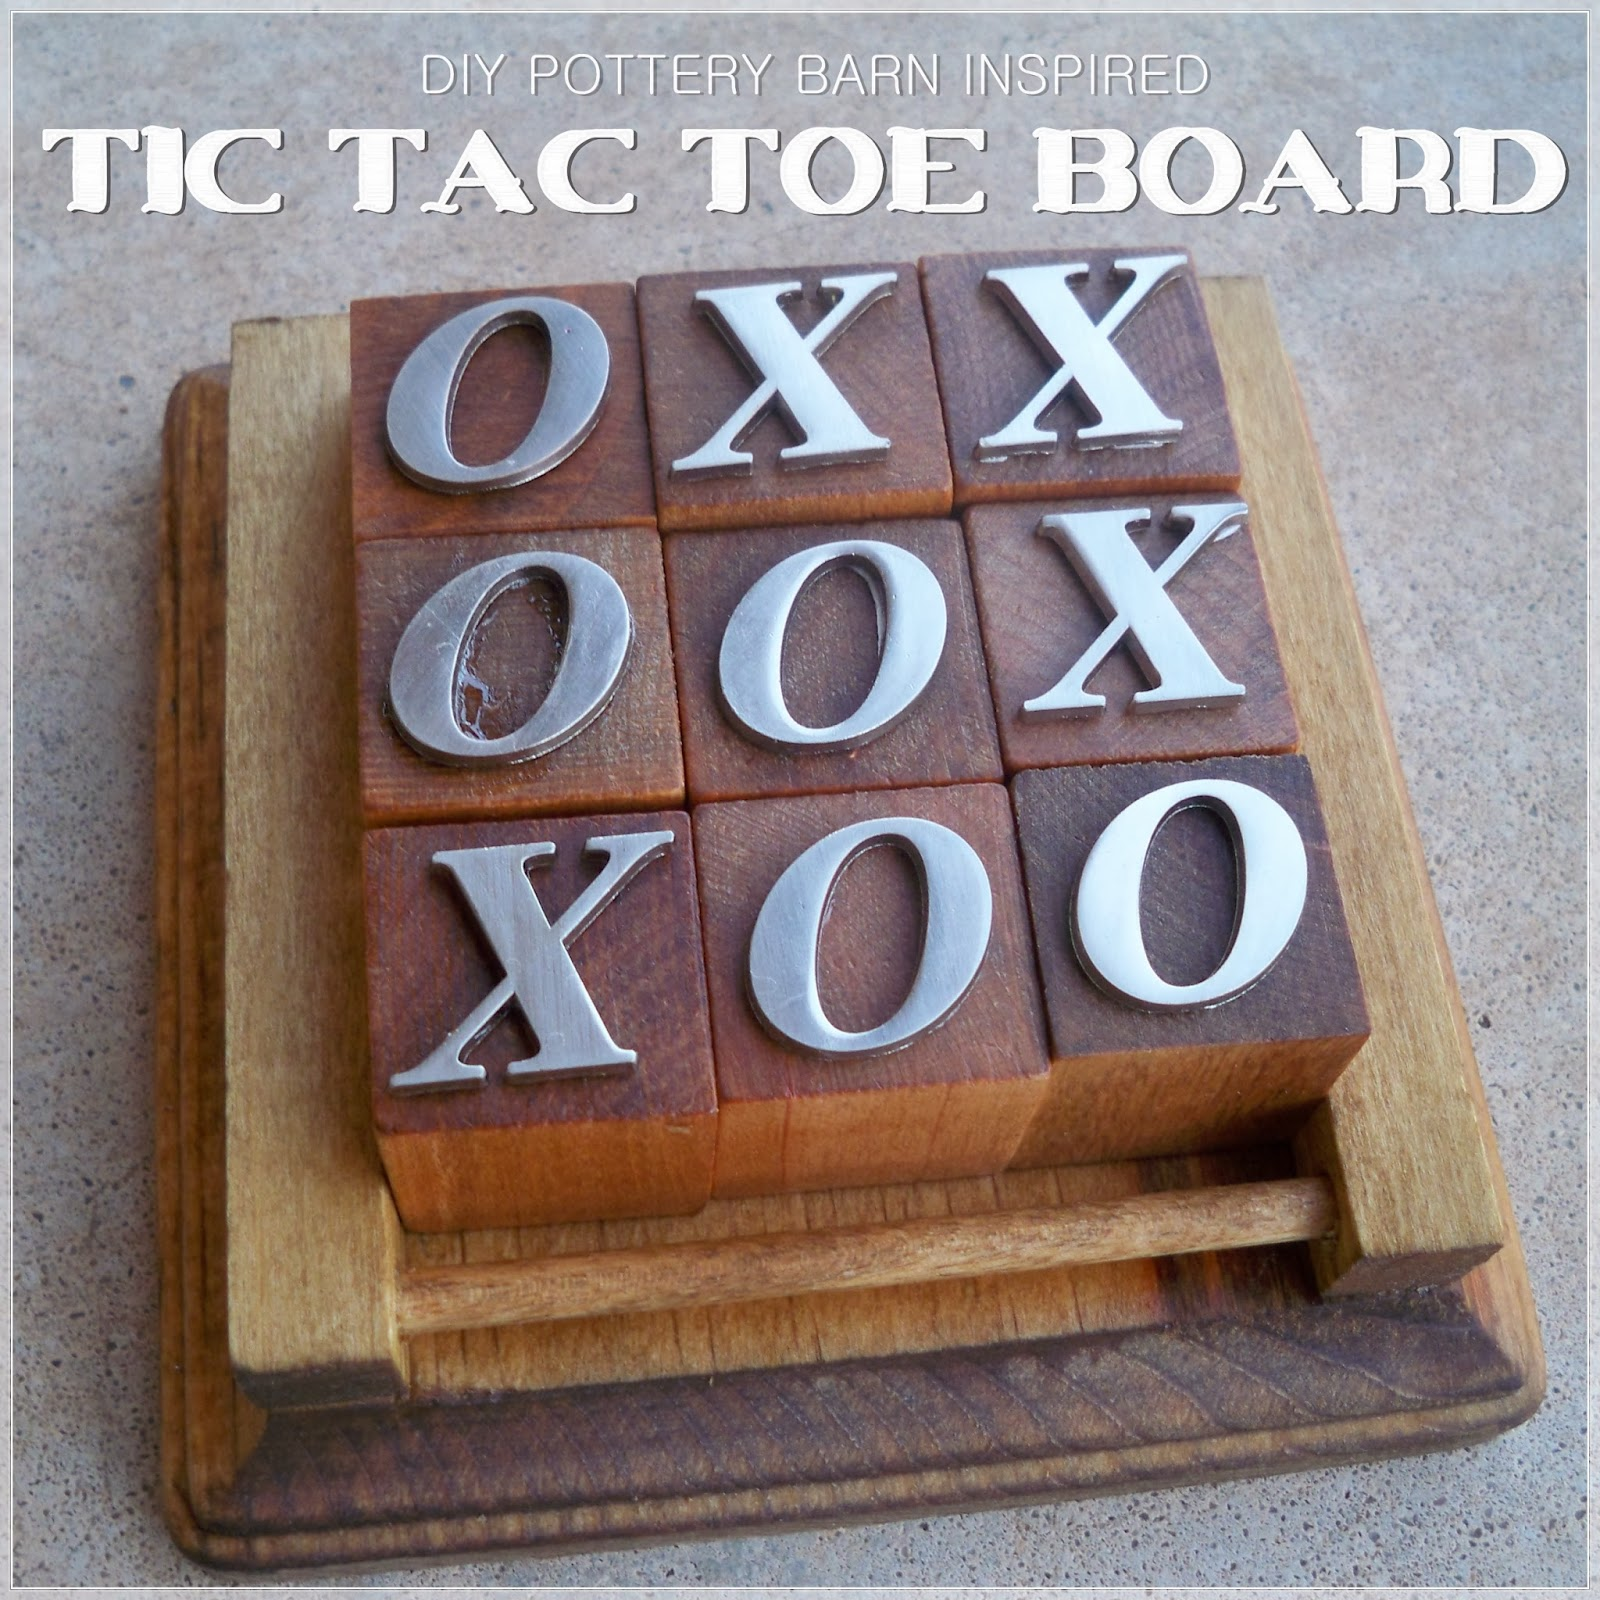 This is an image of Comprehensive Tic Tac Toe Boards